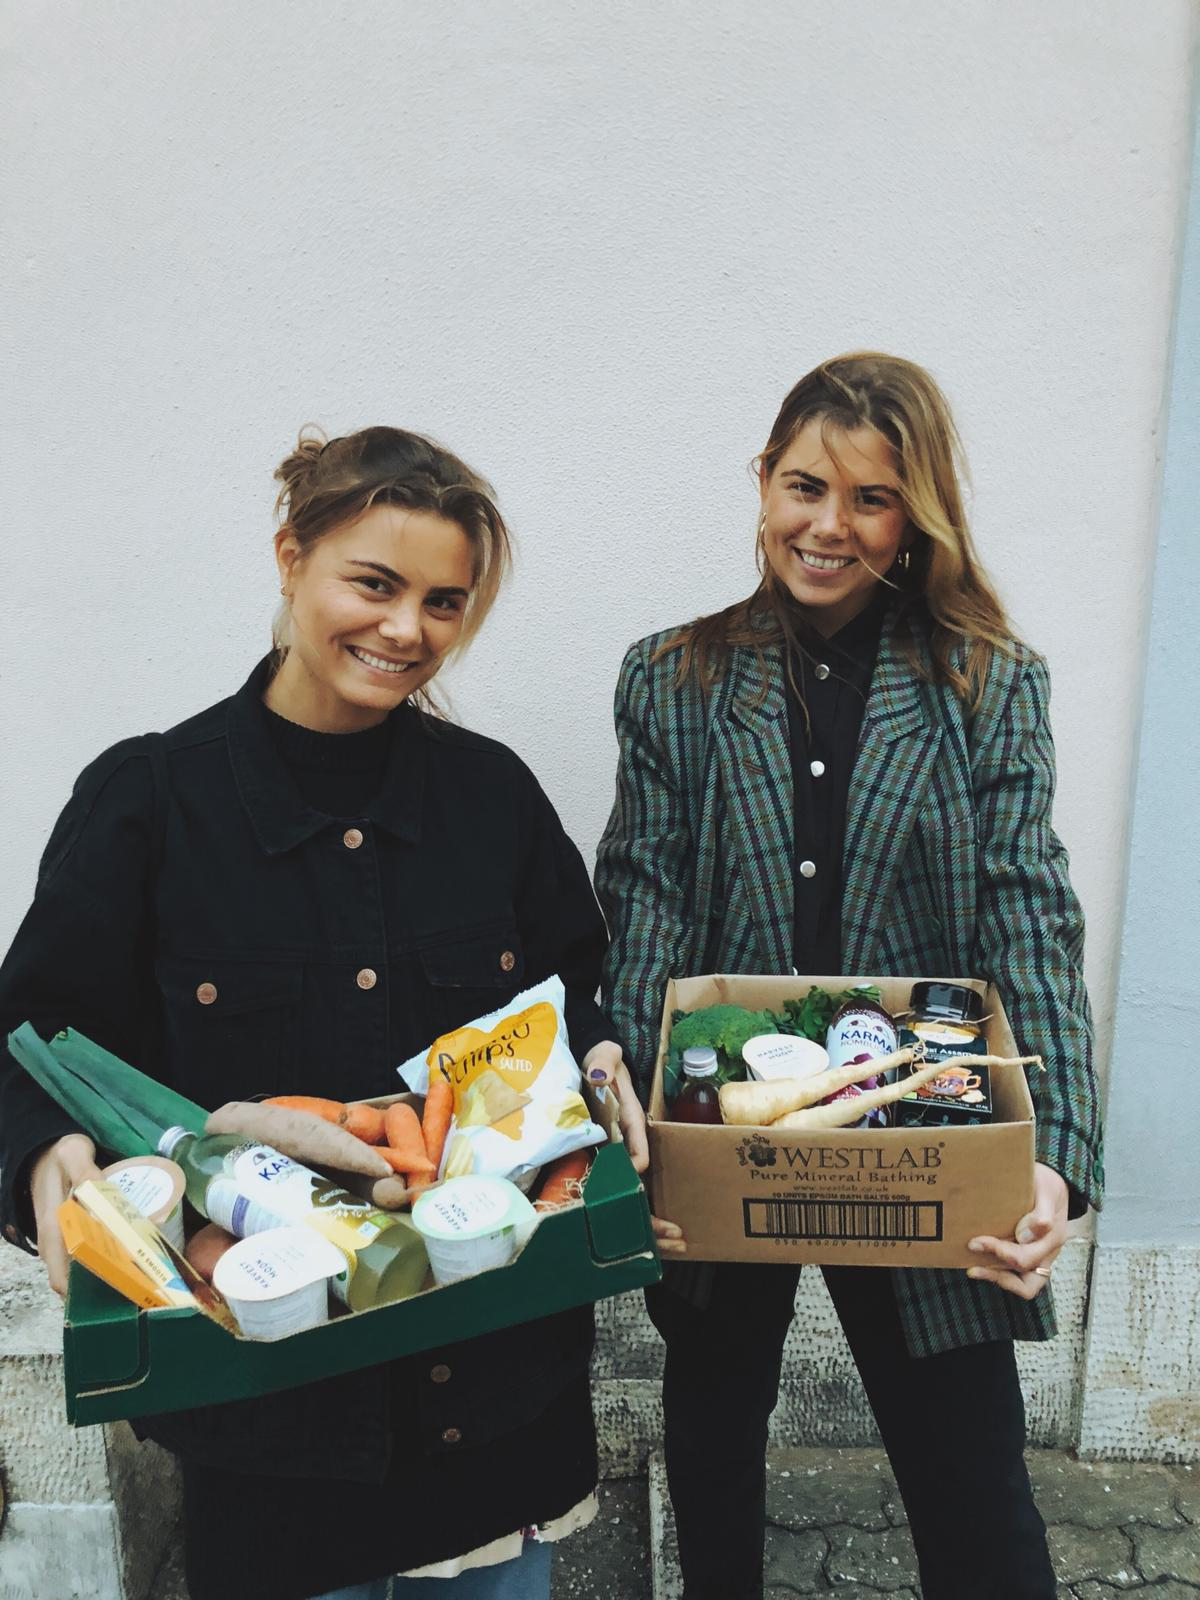 Photo: Marlene Sæthre. Susanne (left) and Anette (right) with fresh plant-based groceries.